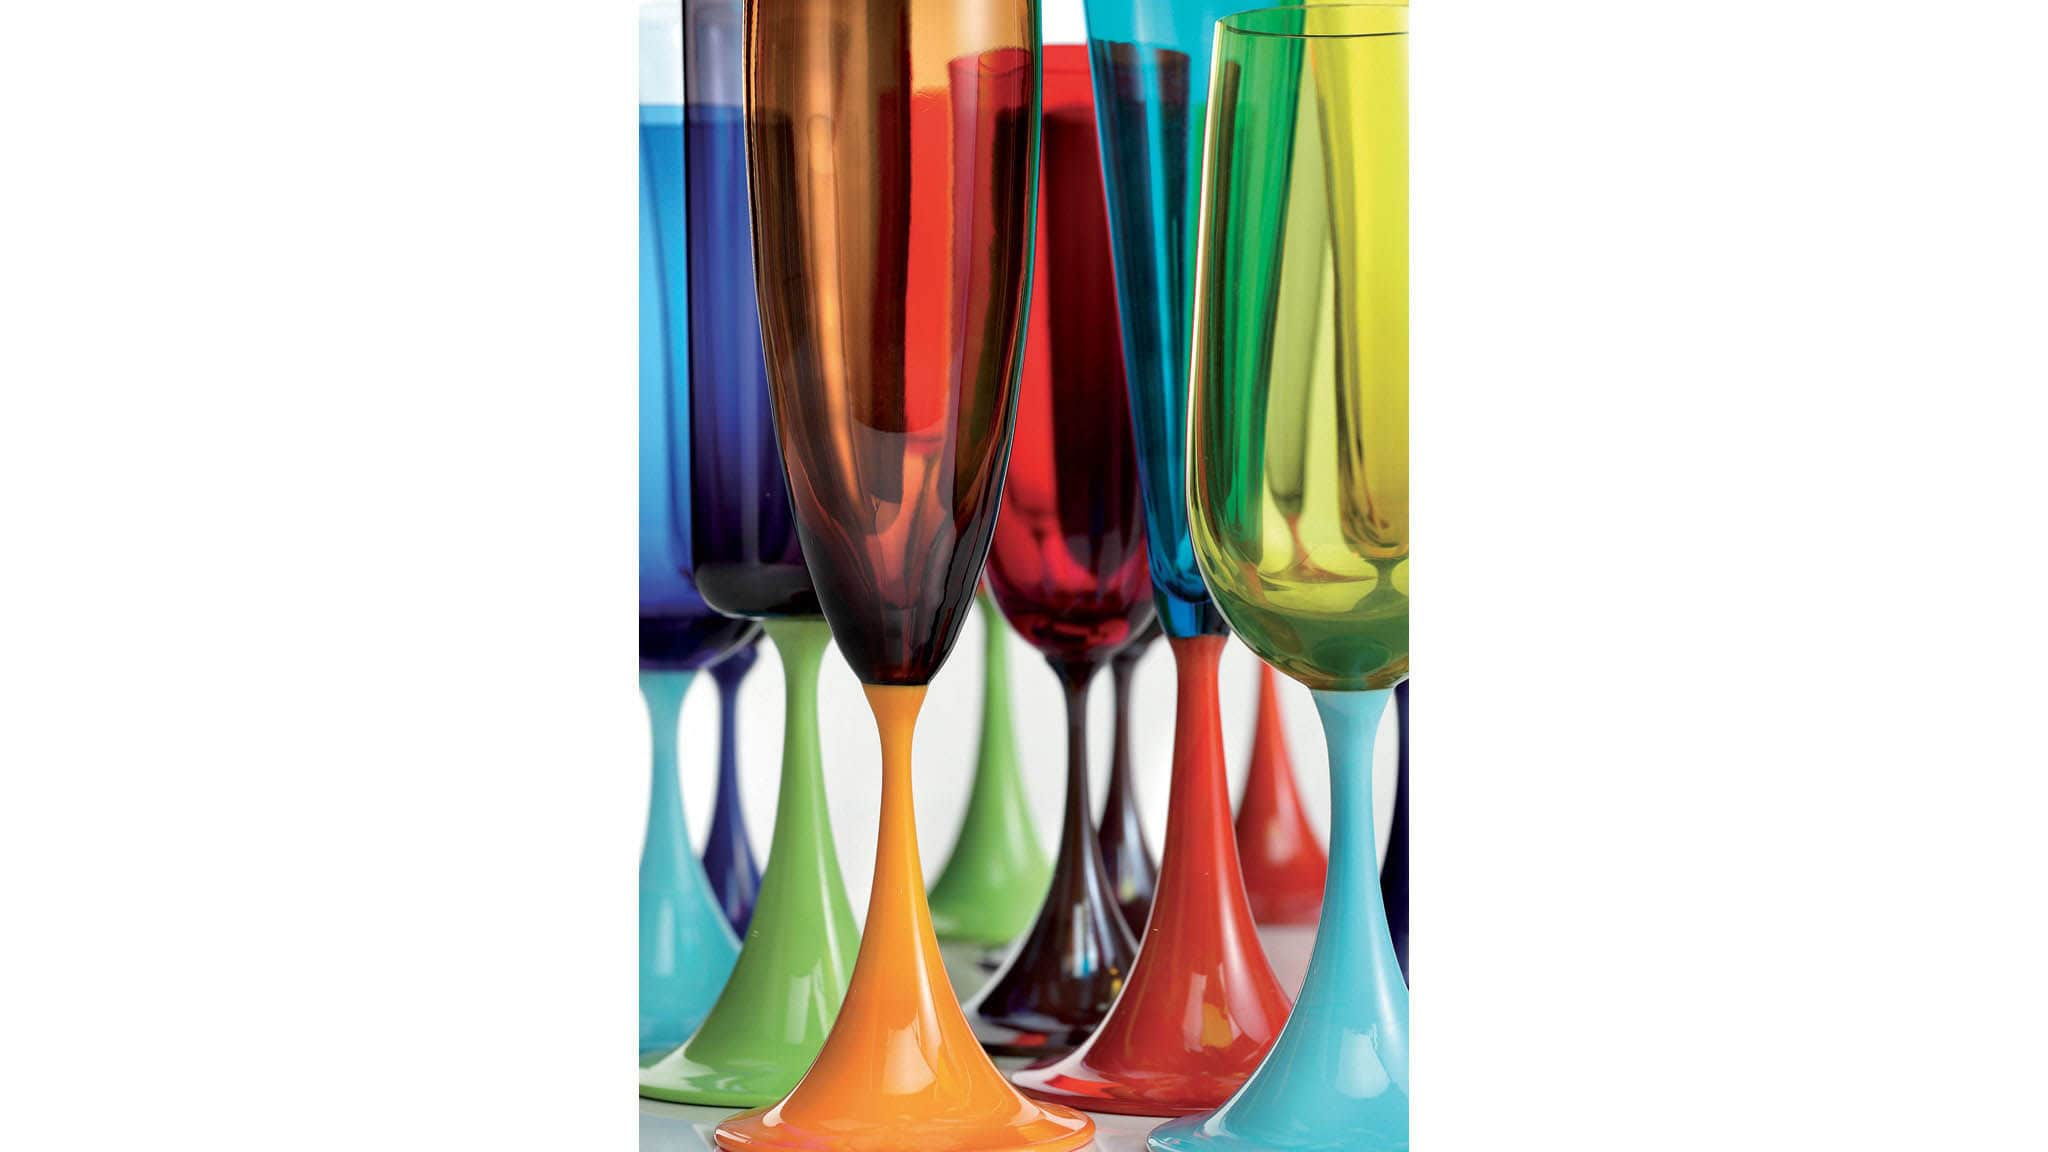 83d0df18c3198 Blown glass champagne flute / commercial - GUEPIERE by Stefano ...